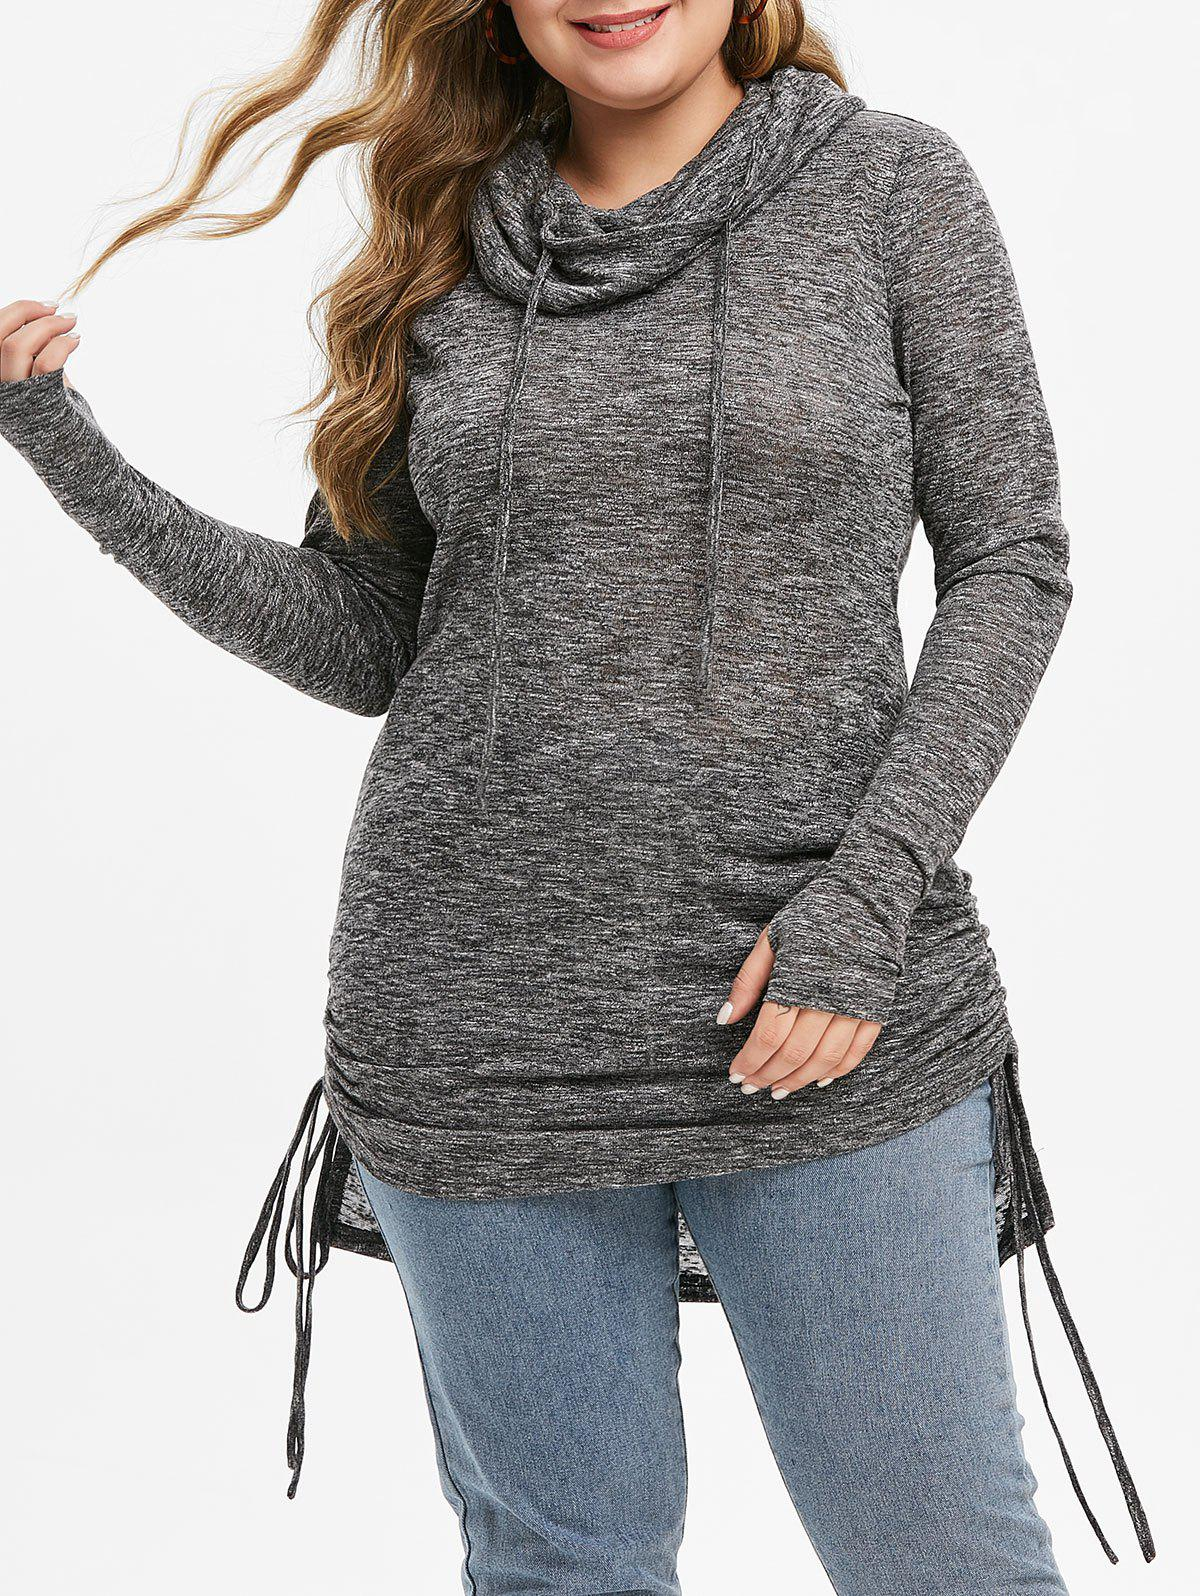 Plus Size Cowl Neck Cinched High Low Marled Knitwear фото